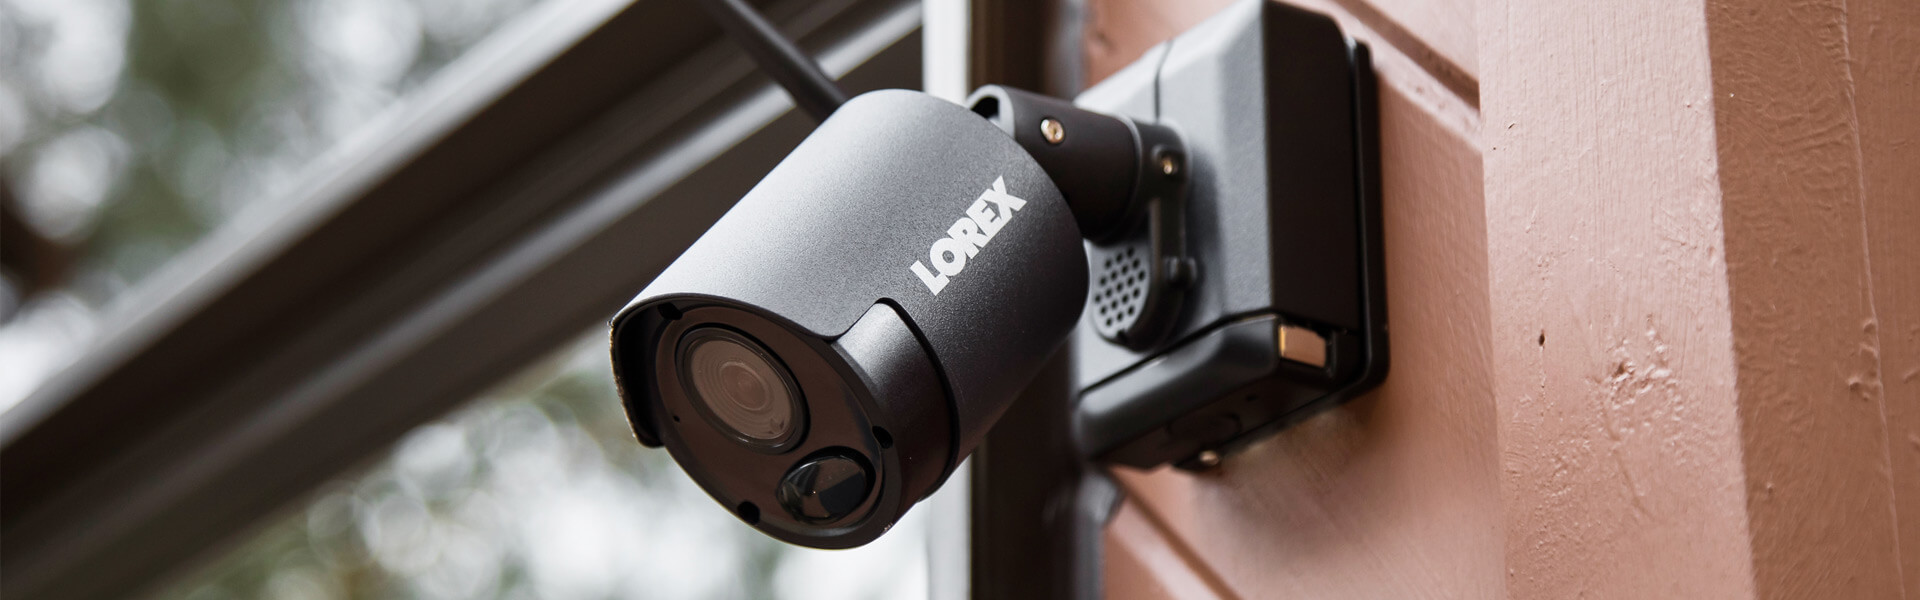 hight resolution of diurnal wire free security cameras